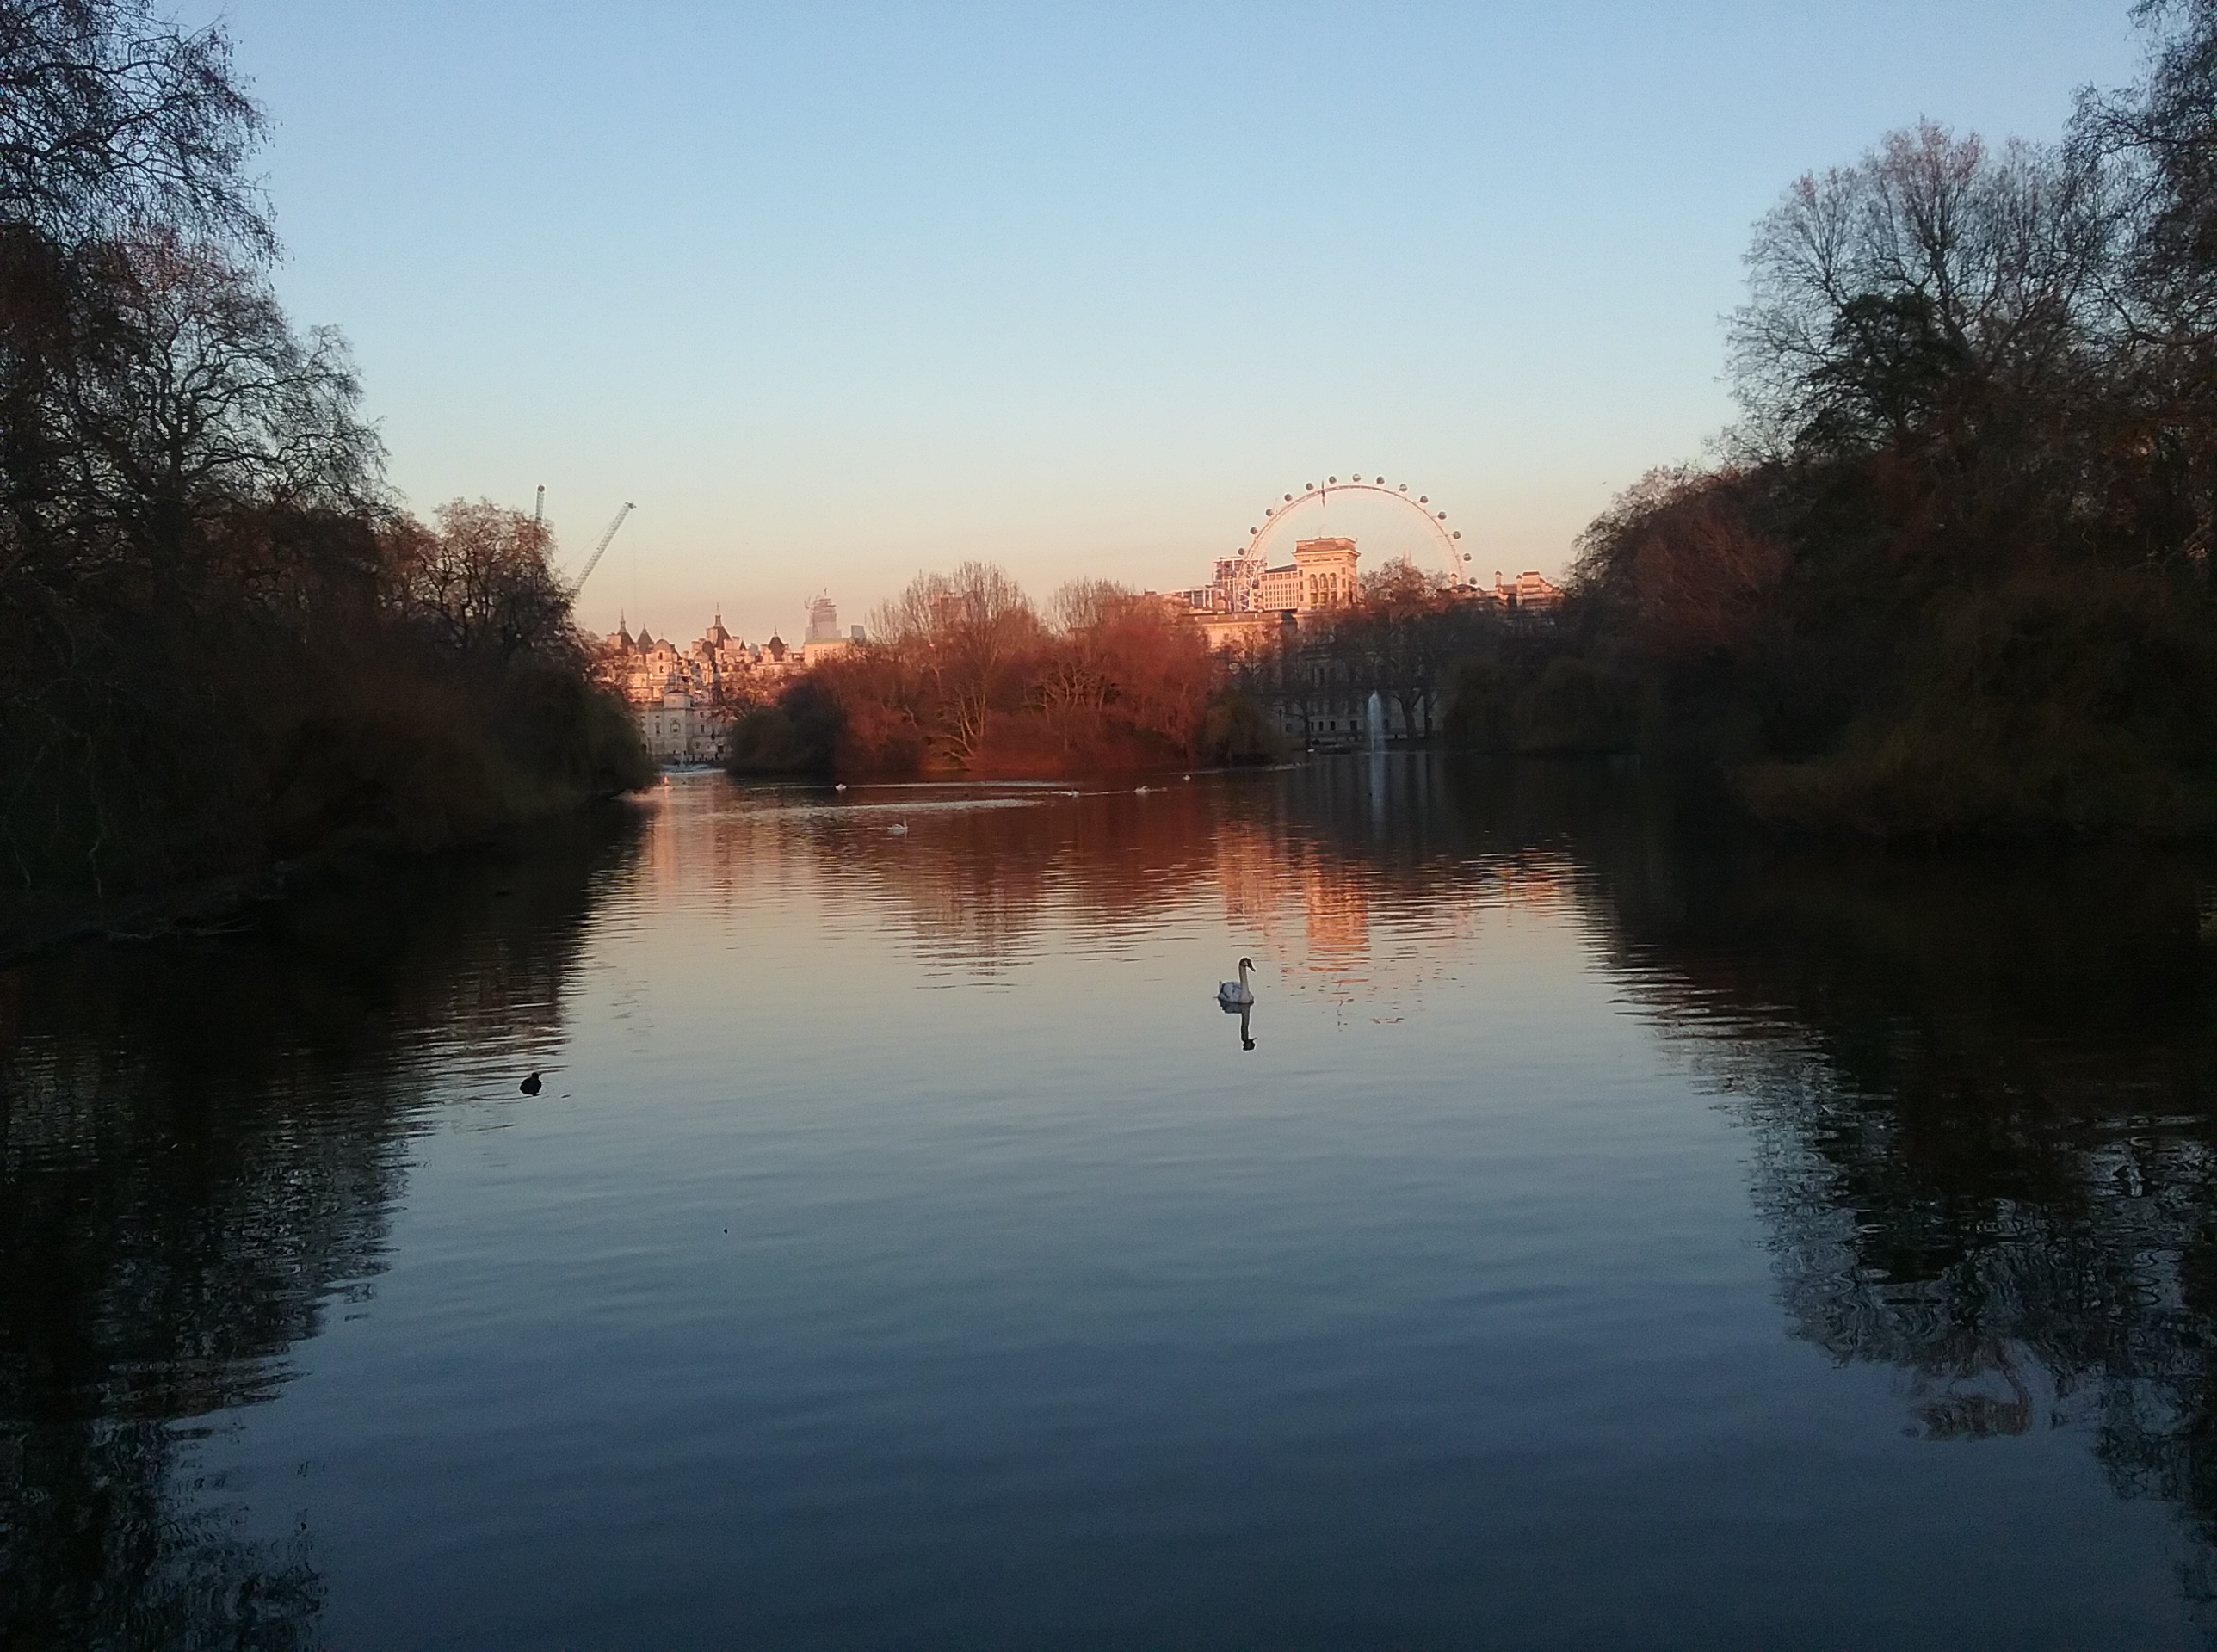 saint james park in london